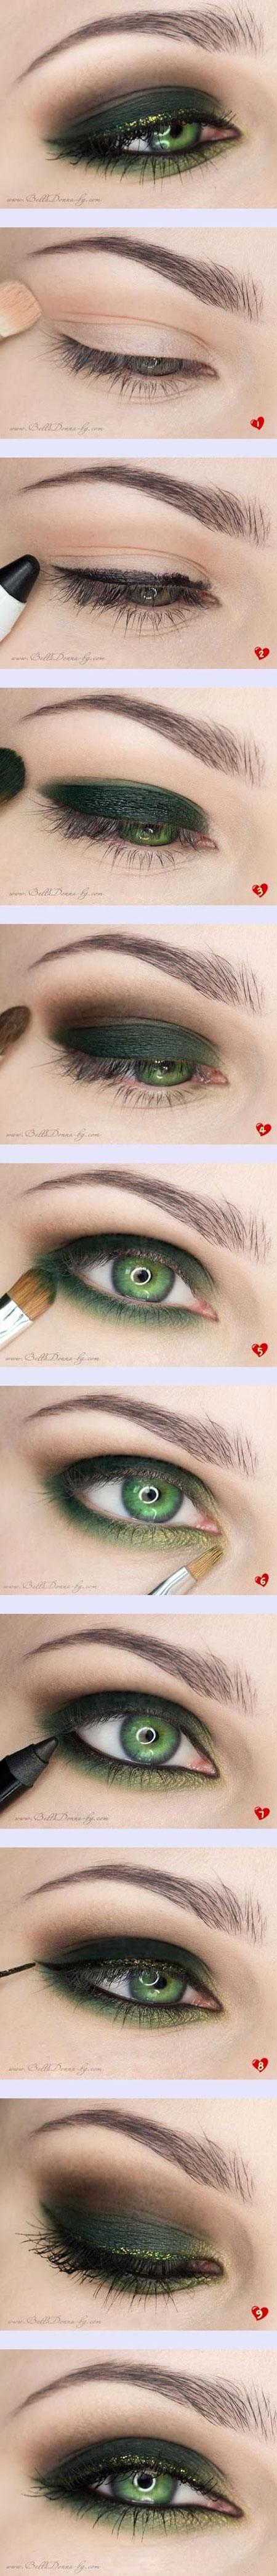 15-Summer-Eye-Makeup-Ideas-Looks-Trends-2015-6